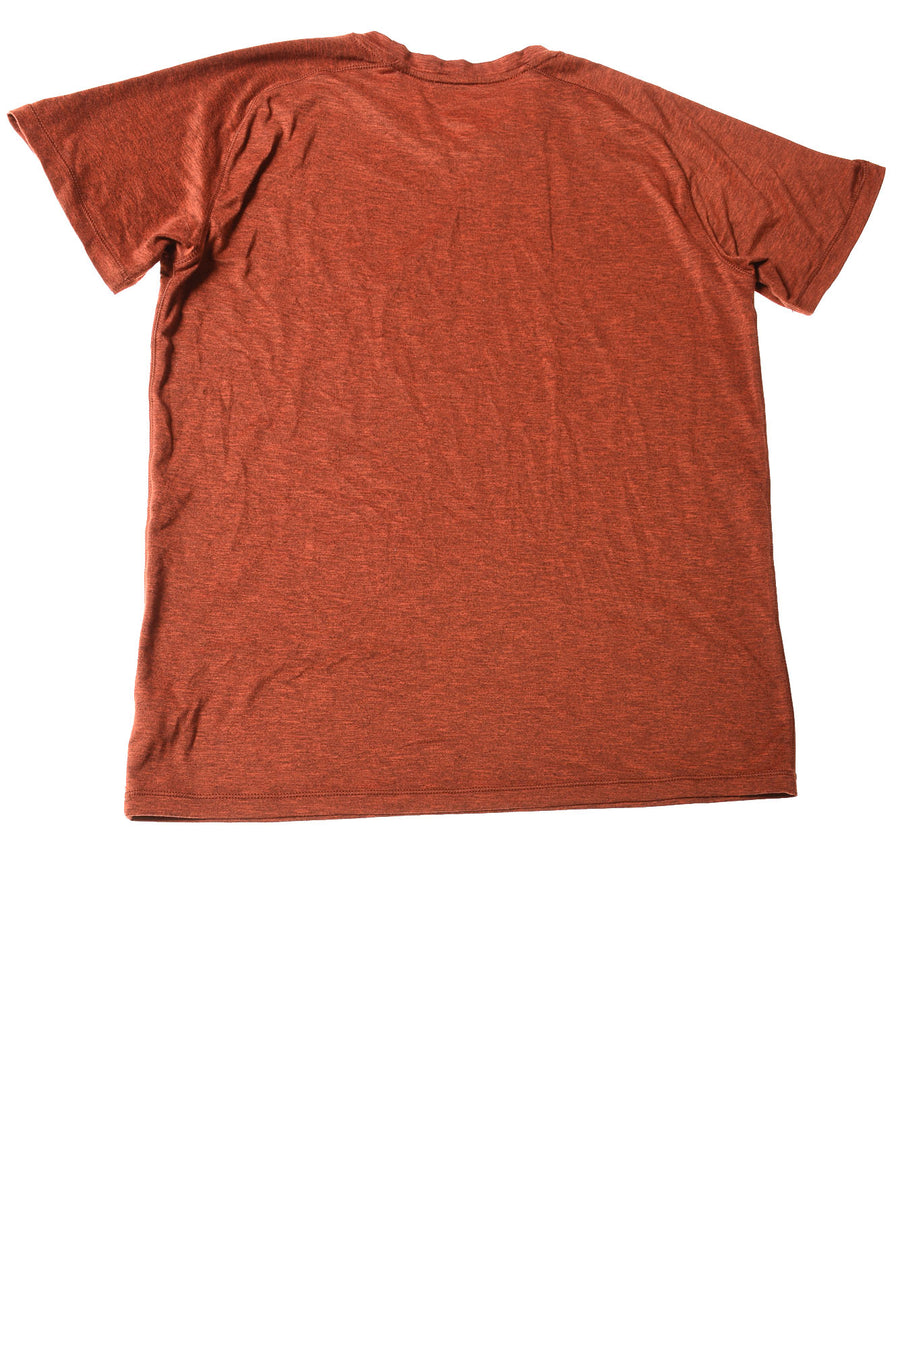 USED American Eagle Men's Shirt Small Rust